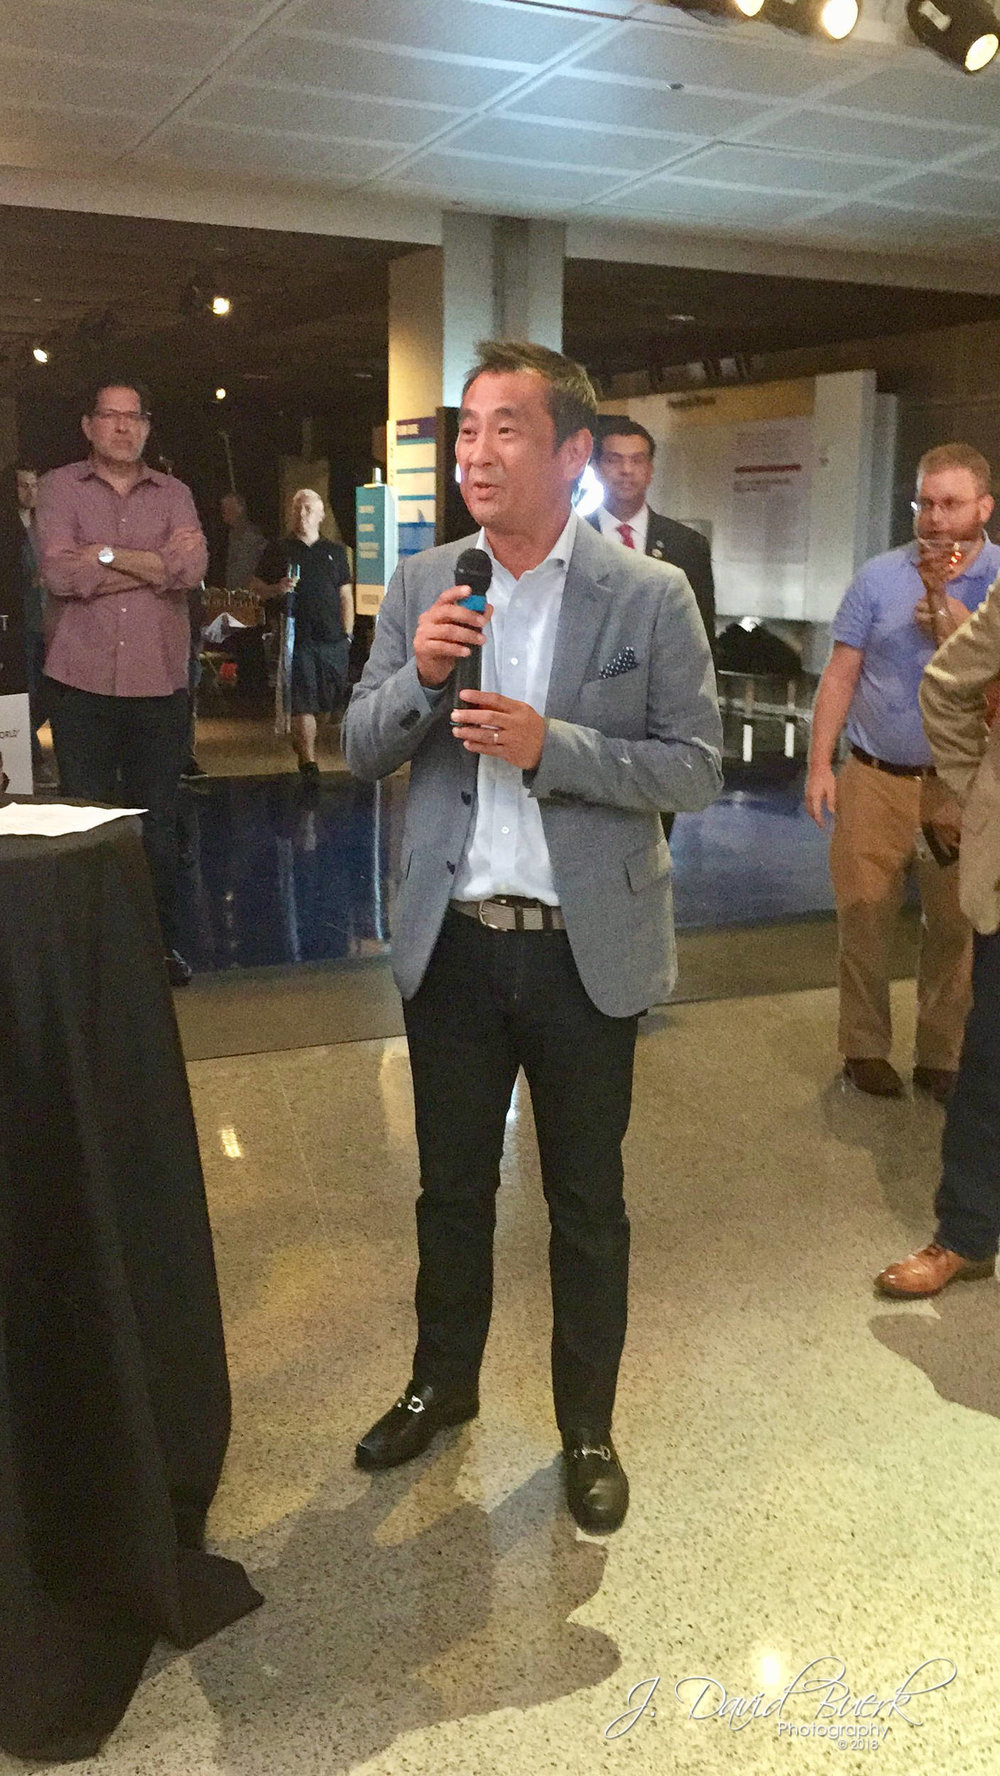 Nikon President and CEO Yasuyuki Okamoto welcomes guests to the Nikon Z 7 release event at the Newseum in Washington, DC.